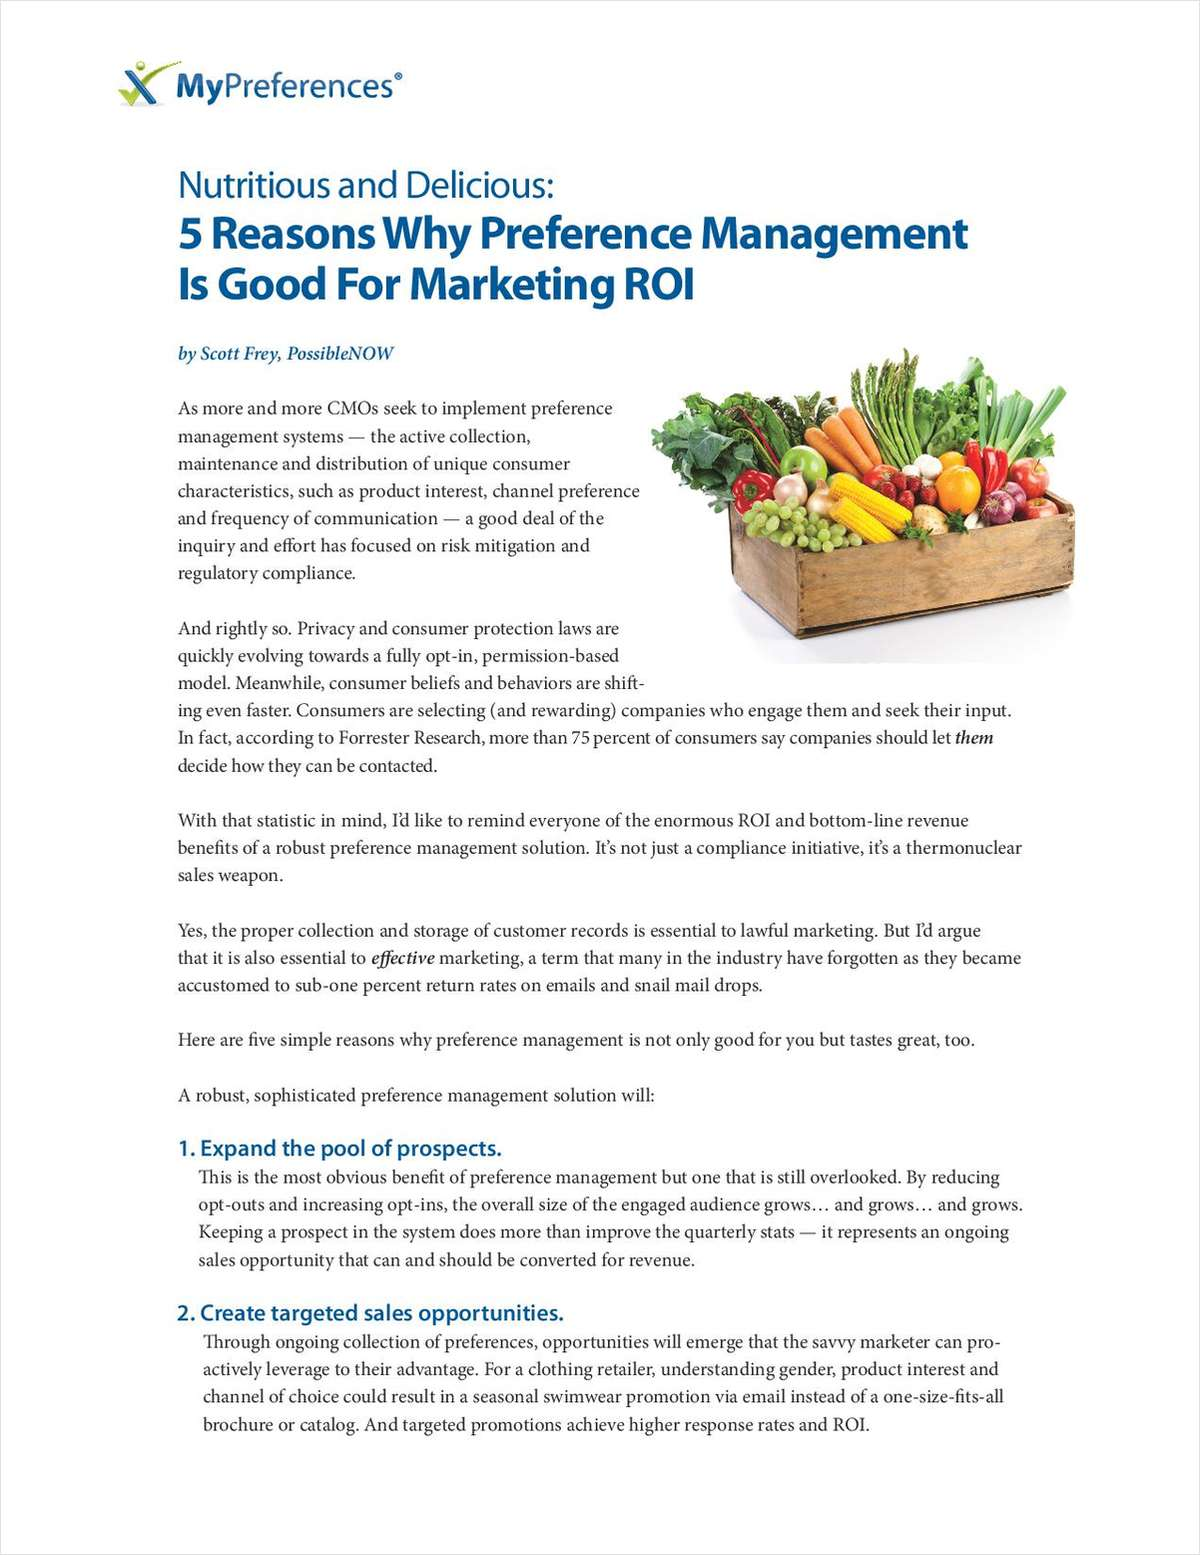 5 Reasons Why Preference Management Is Good For Marketing ROI